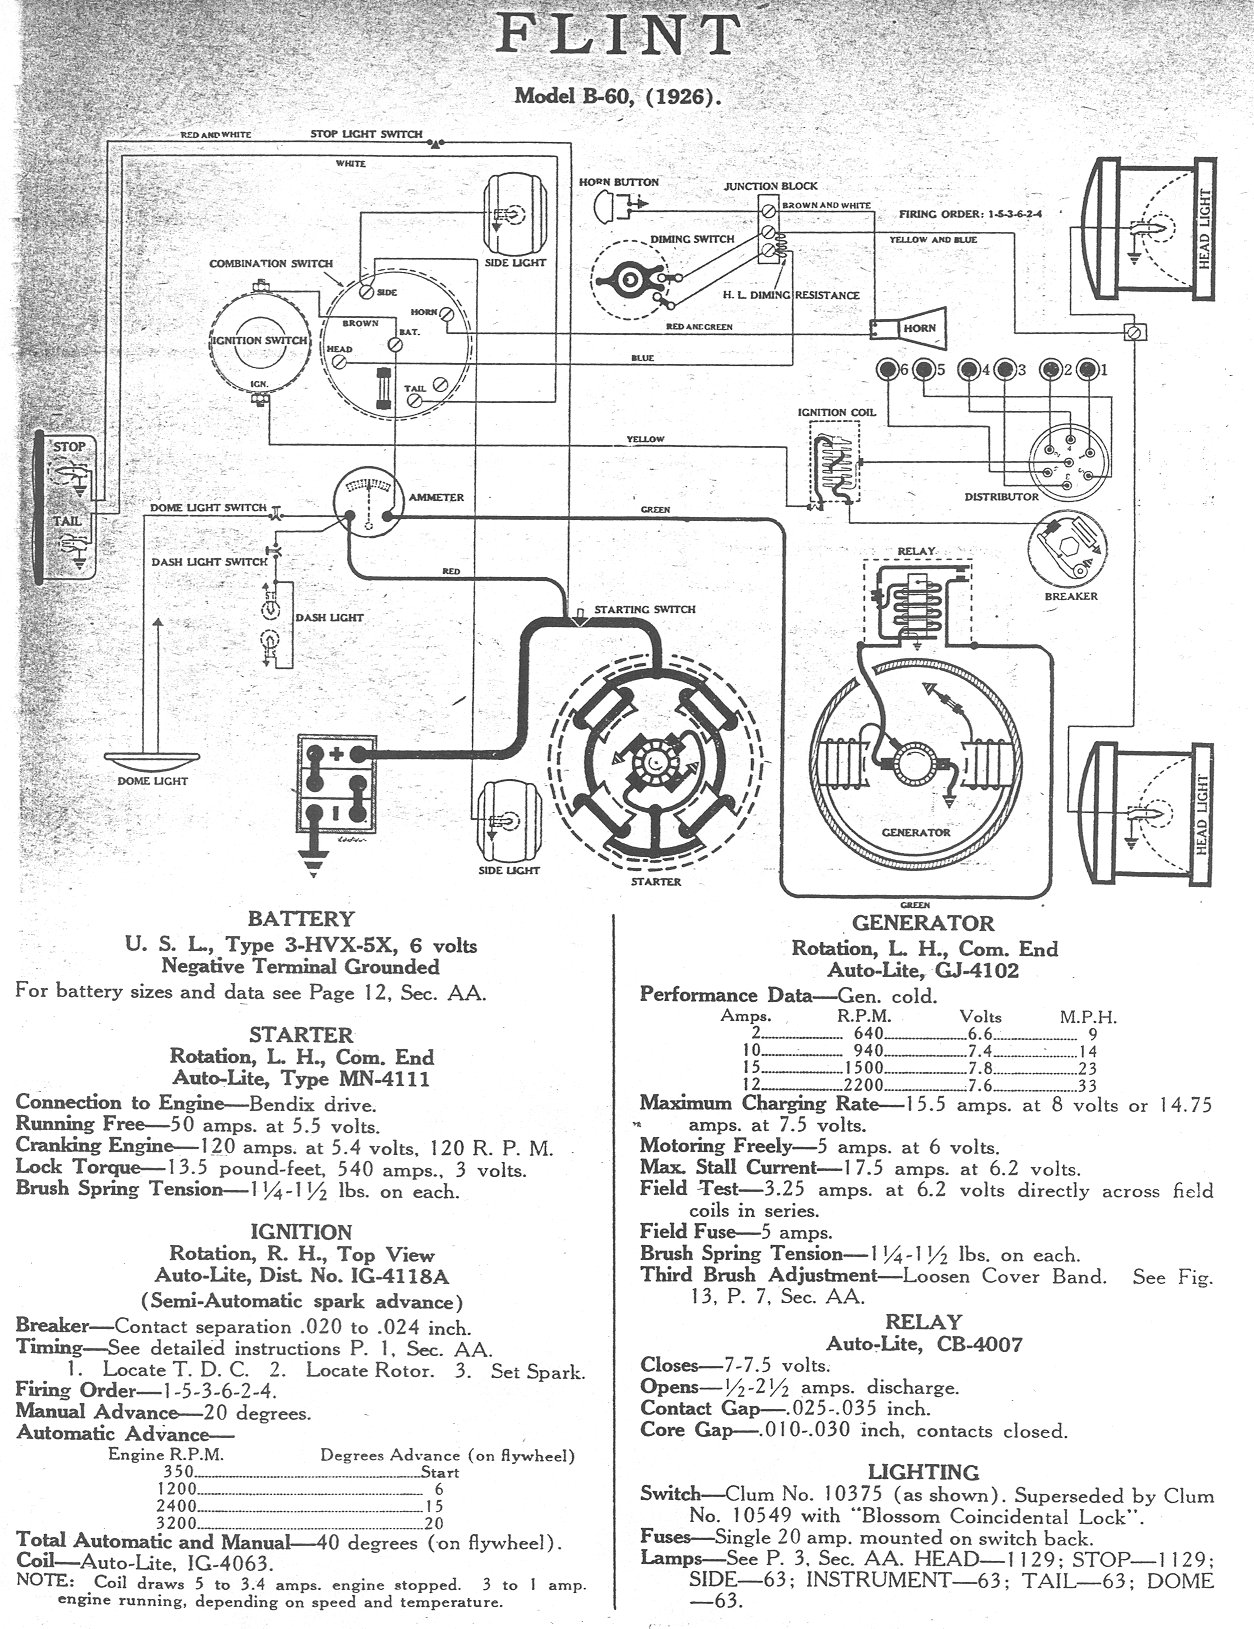 Model T Ford Forum Wiring Diagrams Grrrrrrrrrrr. Ford